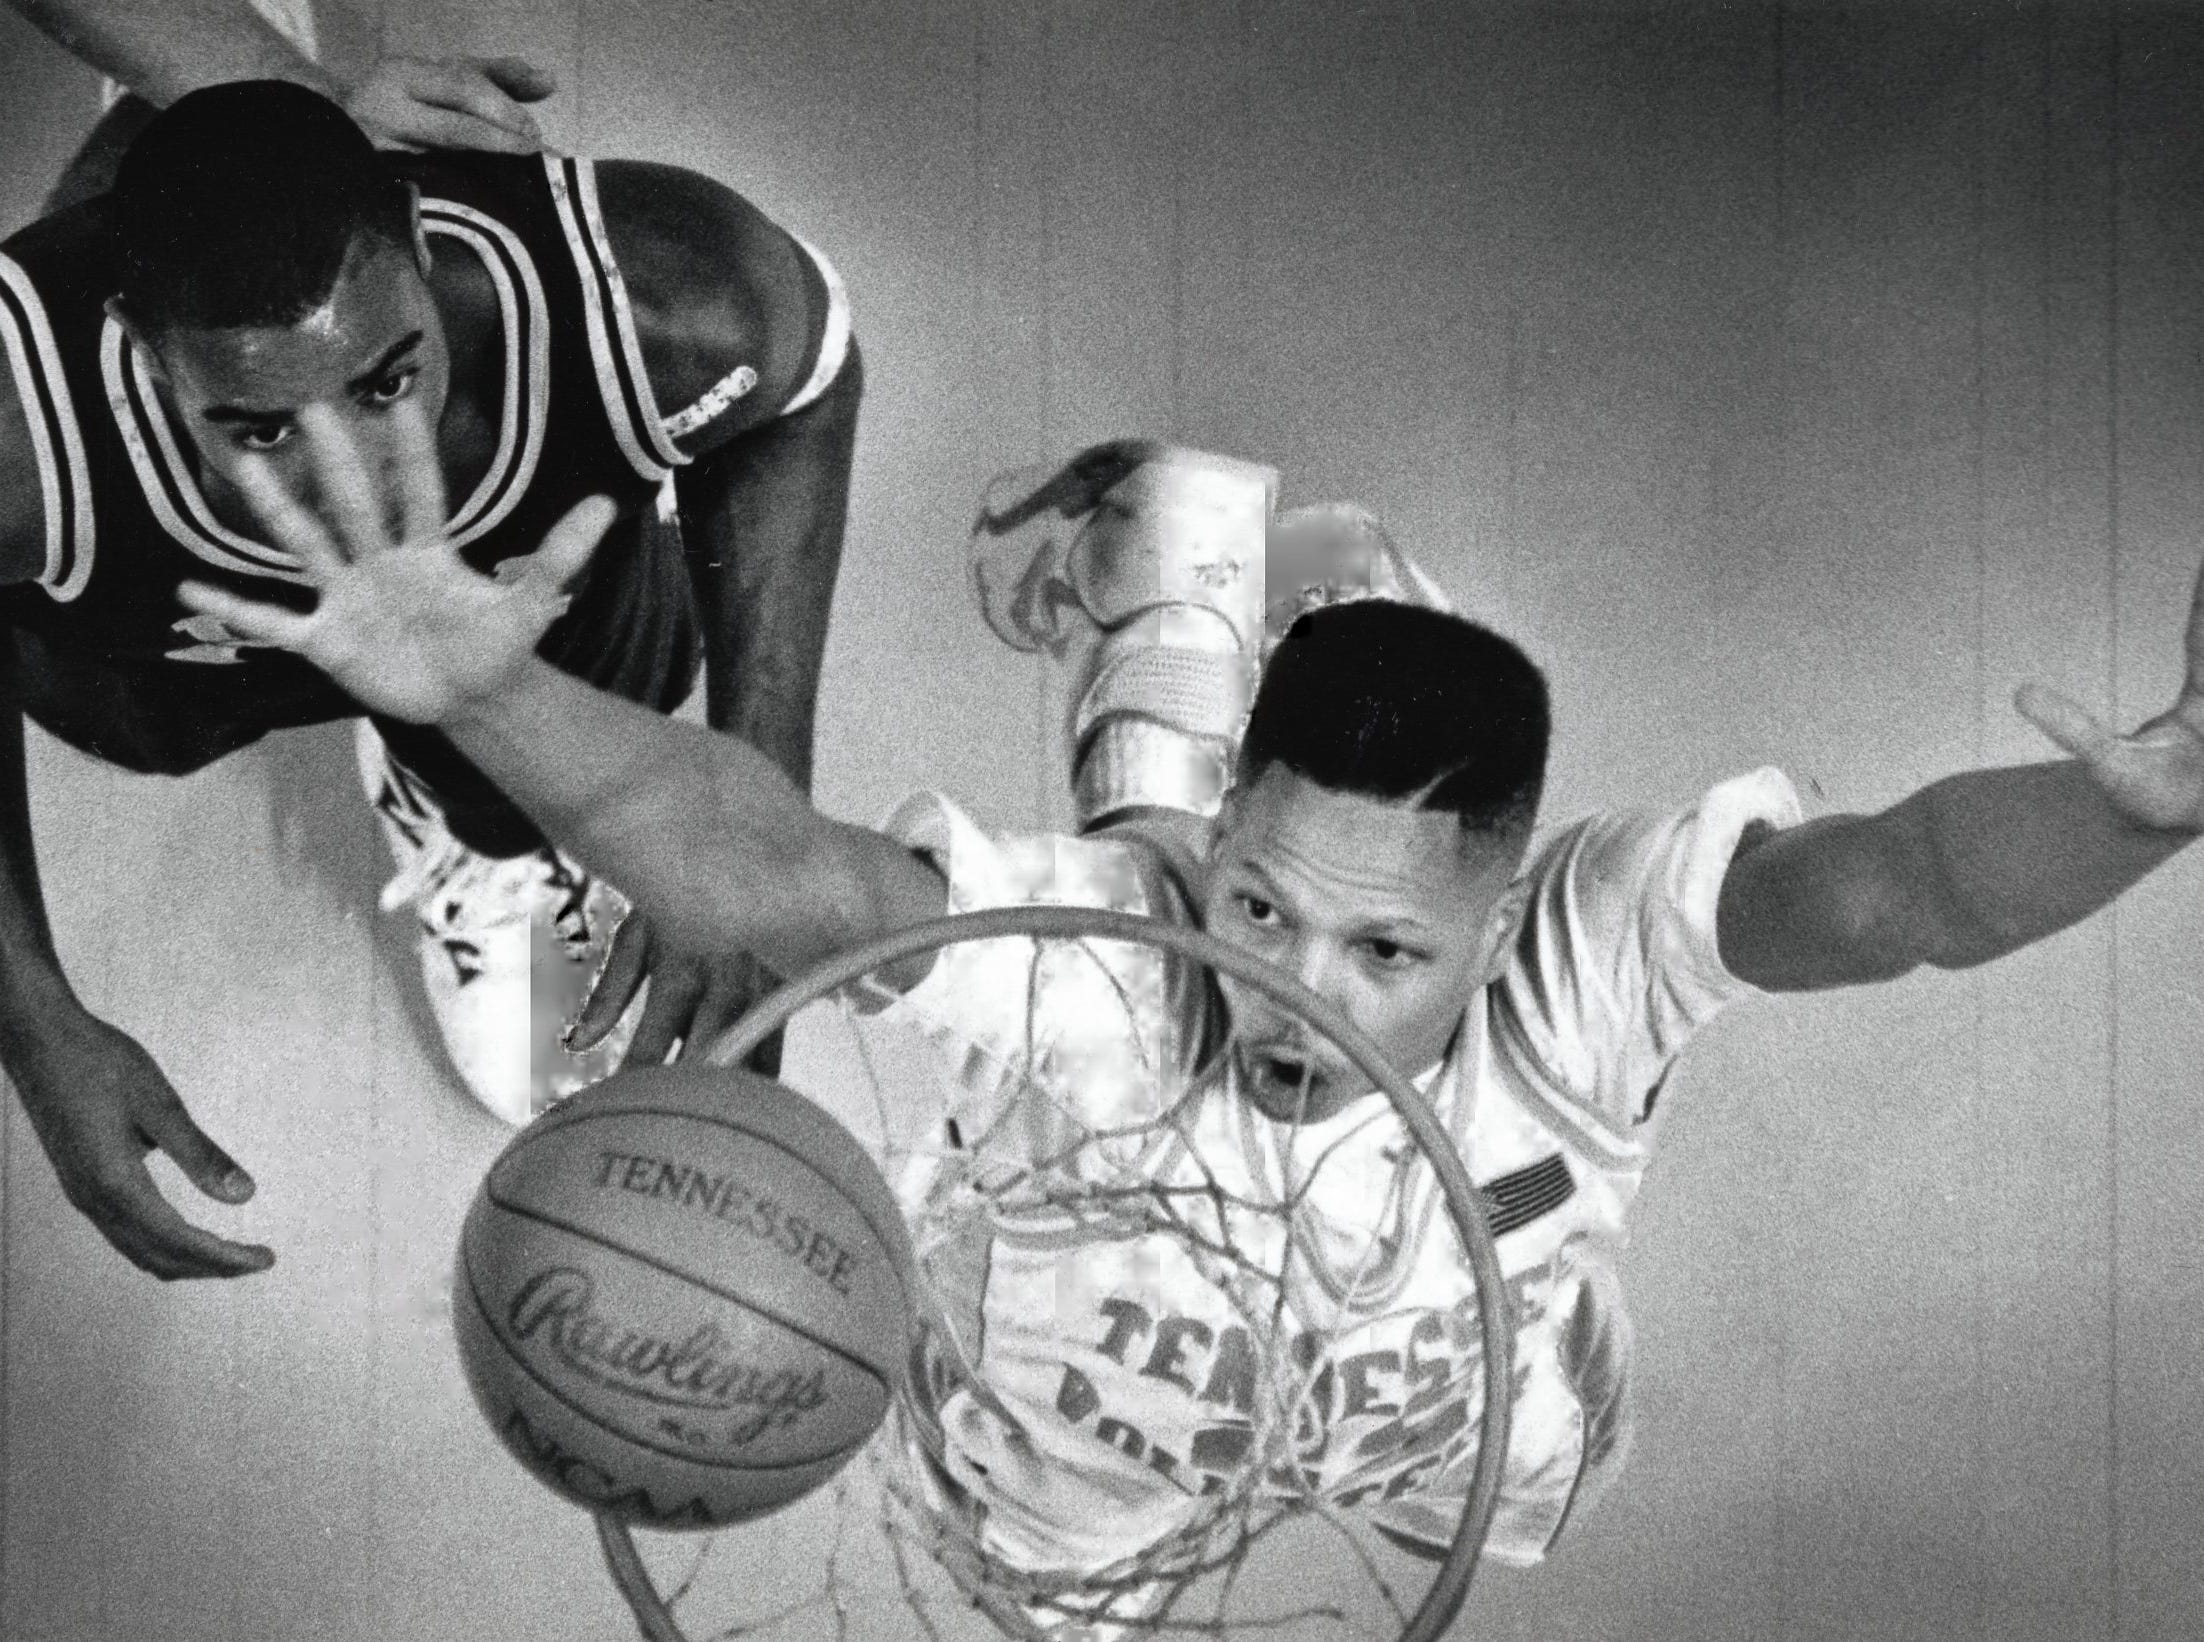 Tennessee's Steve Rivers makes sure the ball drops through the hoop after a rebound during a game in January 1991.